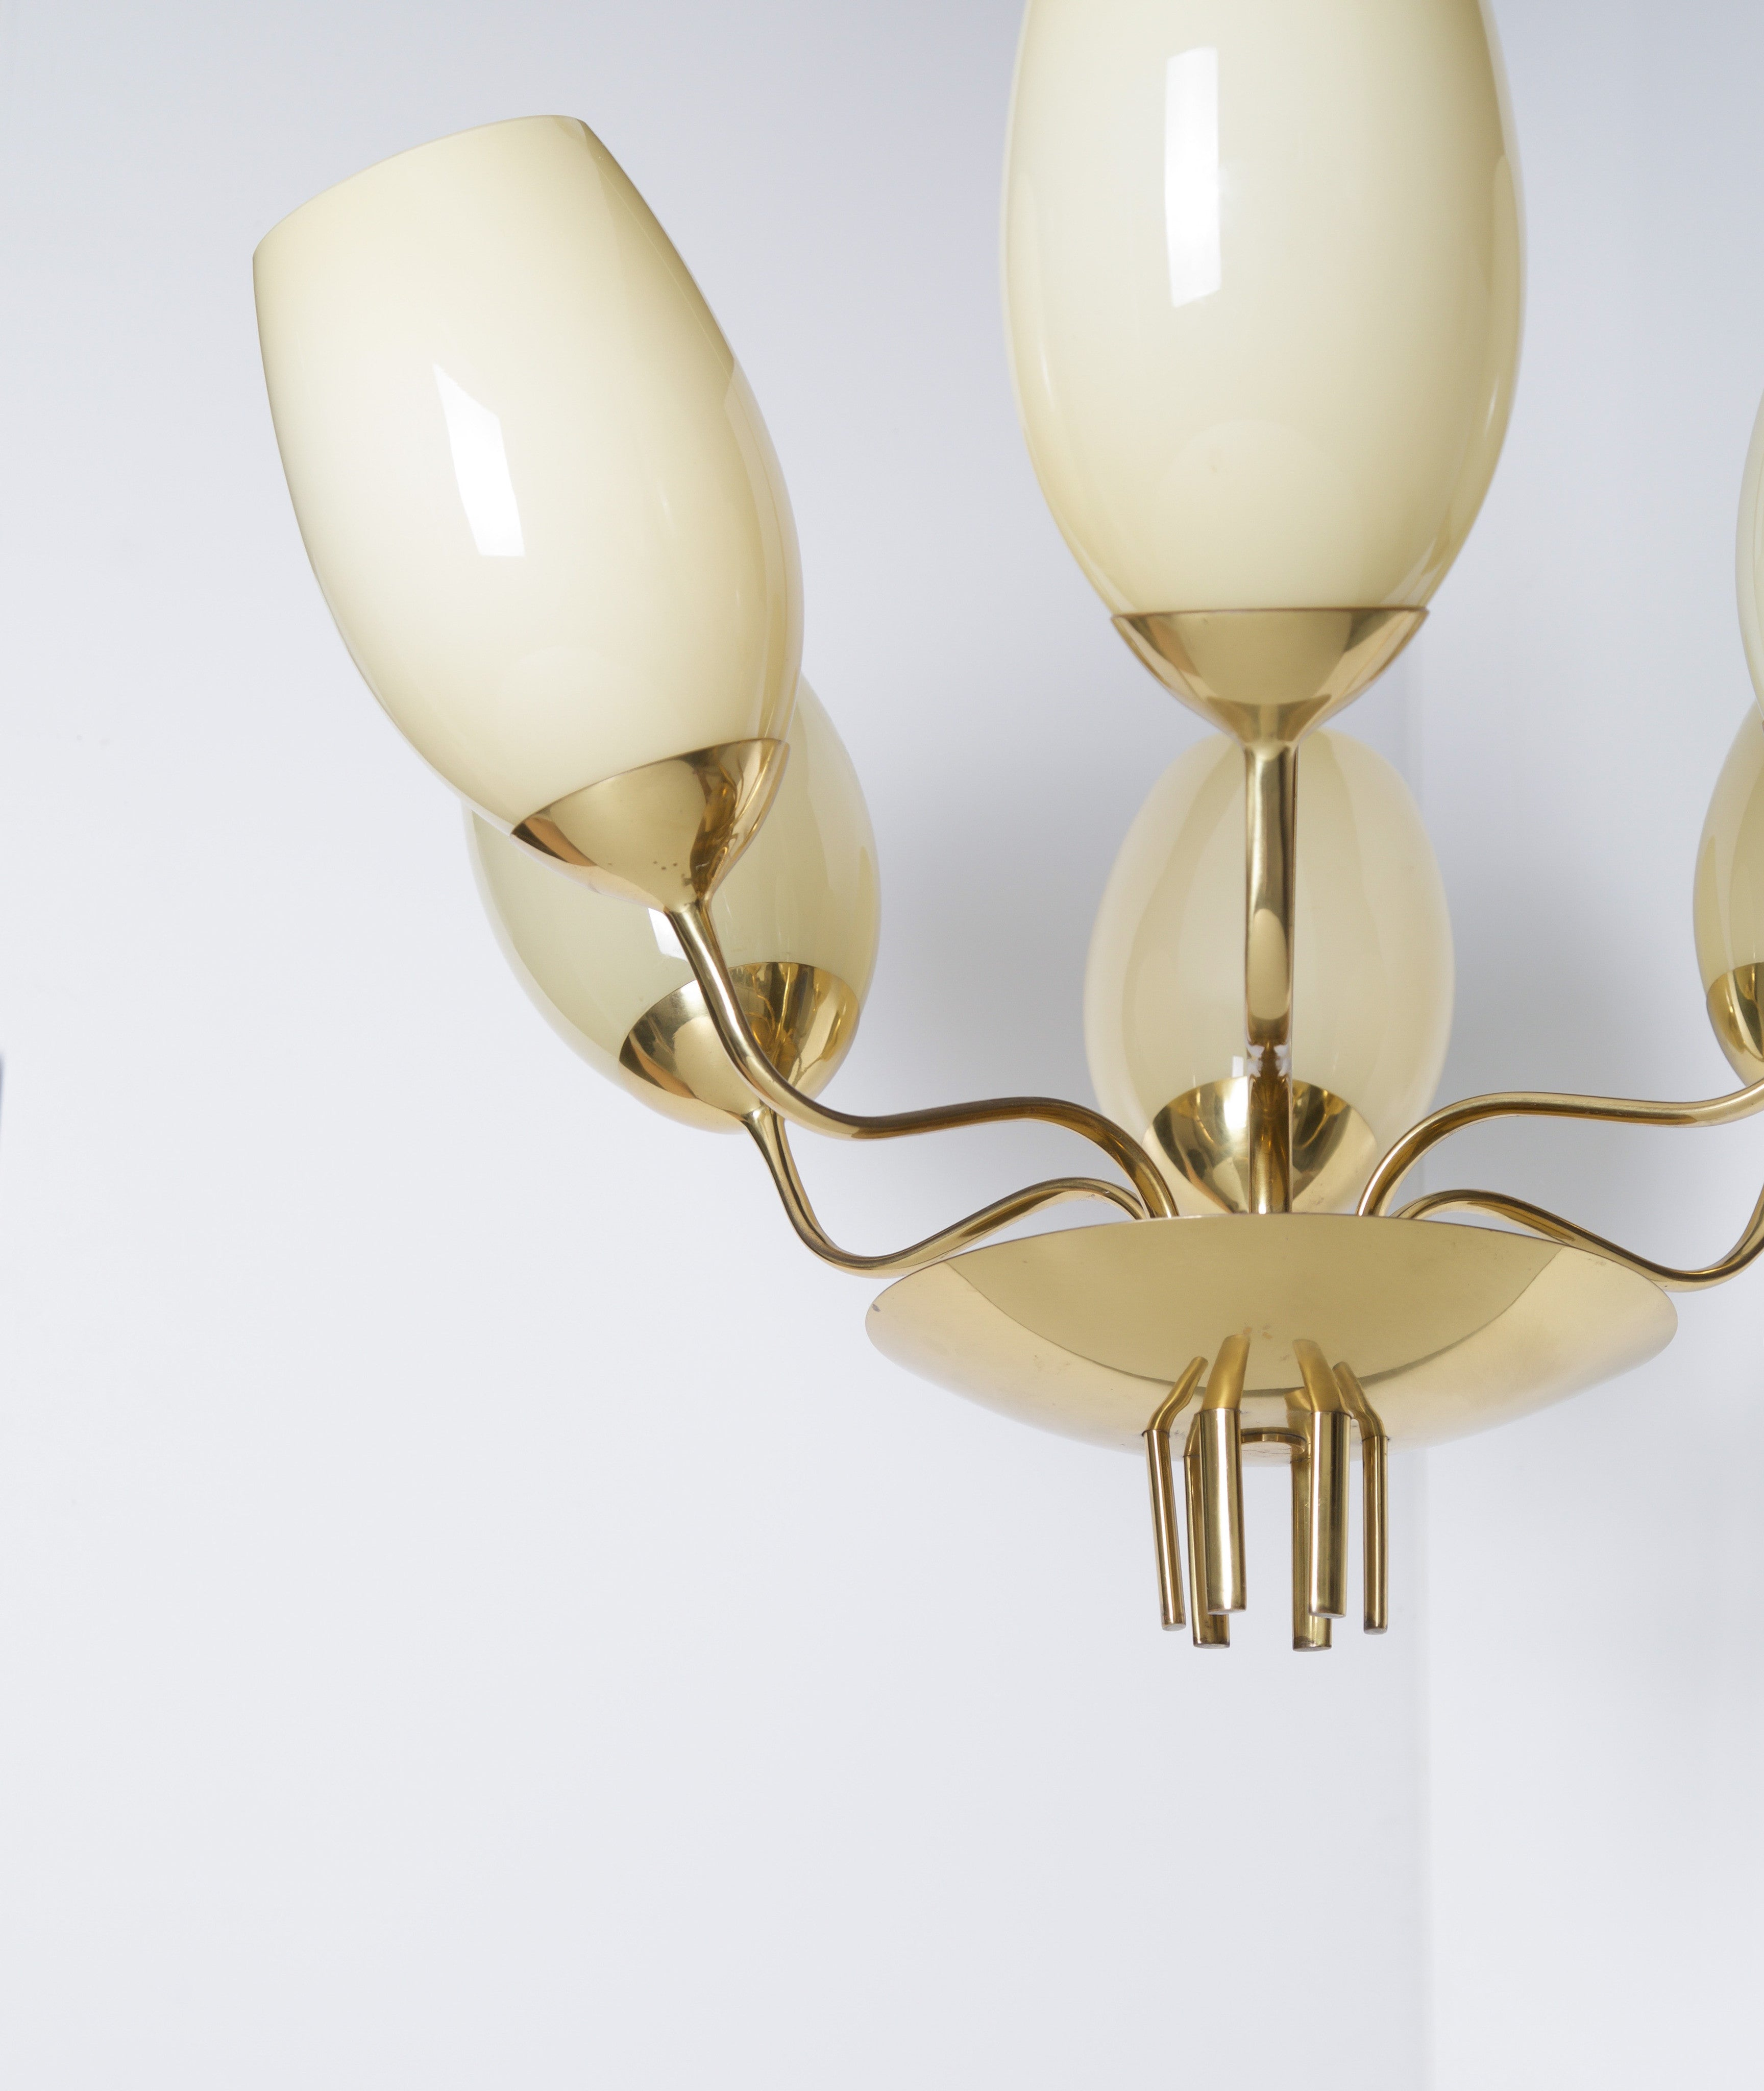 Paavo Tynell Brass Chandelier with Opaline Glass Shades, Model 9029/6, 1940s - The Exchange Int